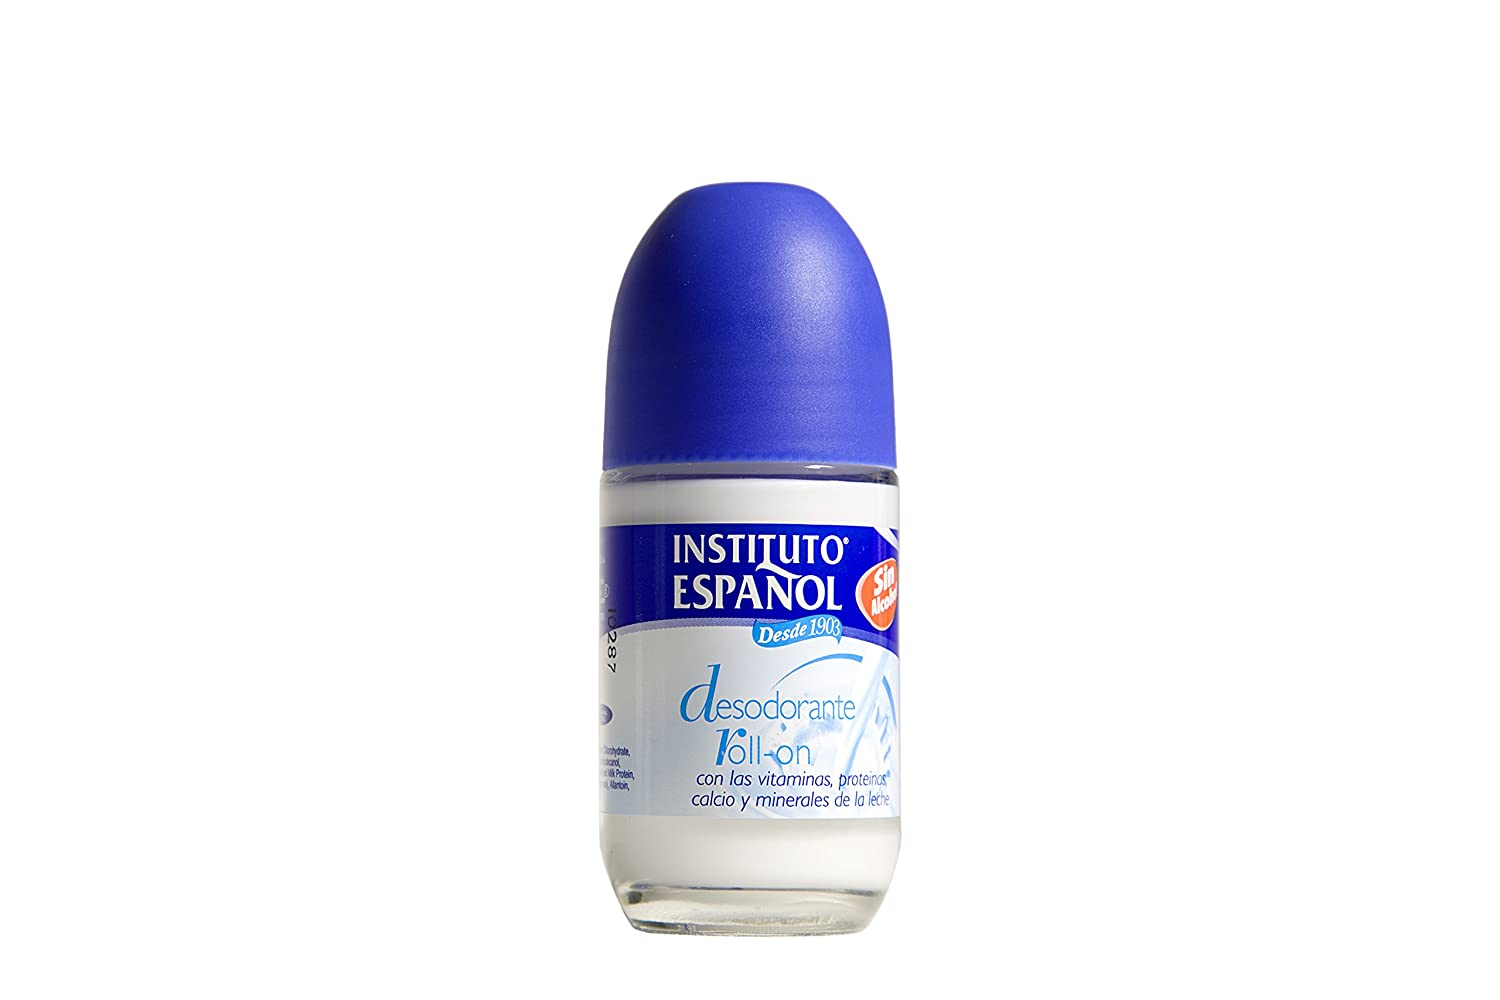 Instituto Español Desodorante Roll On con Leche y Vitaminas - 75 ml: Amazon.es: Belleza